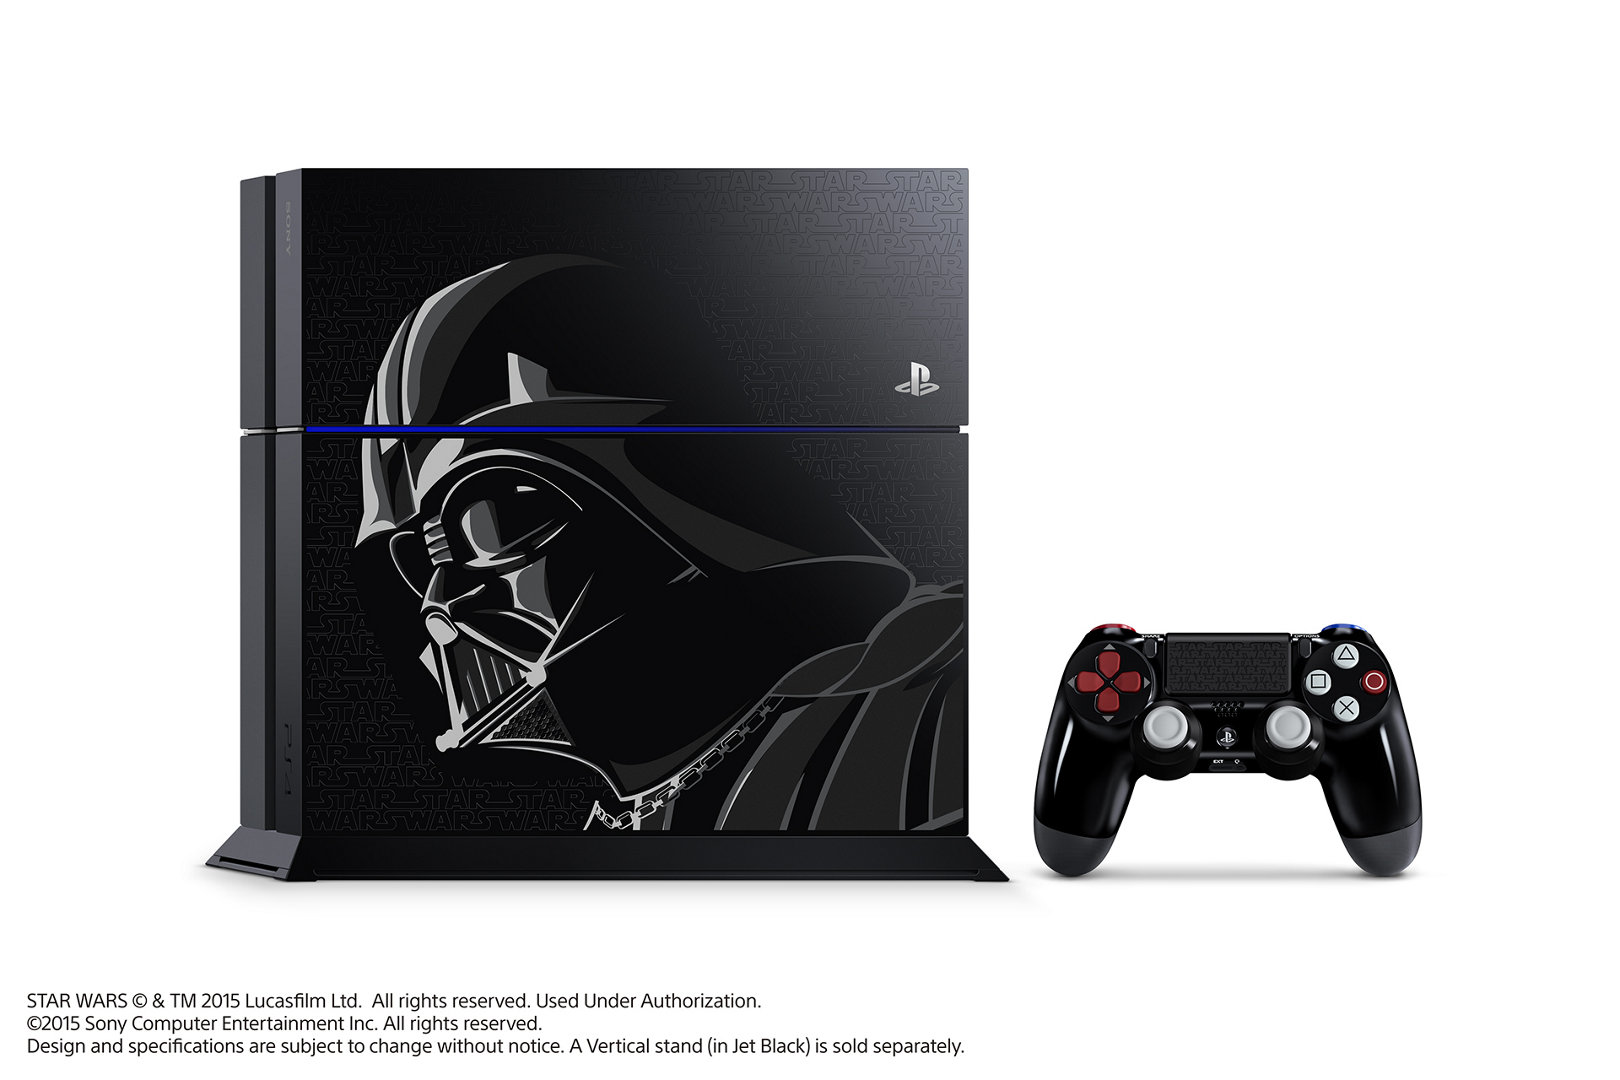 star-wars-ps4-bundles-system-01-us-13aug15